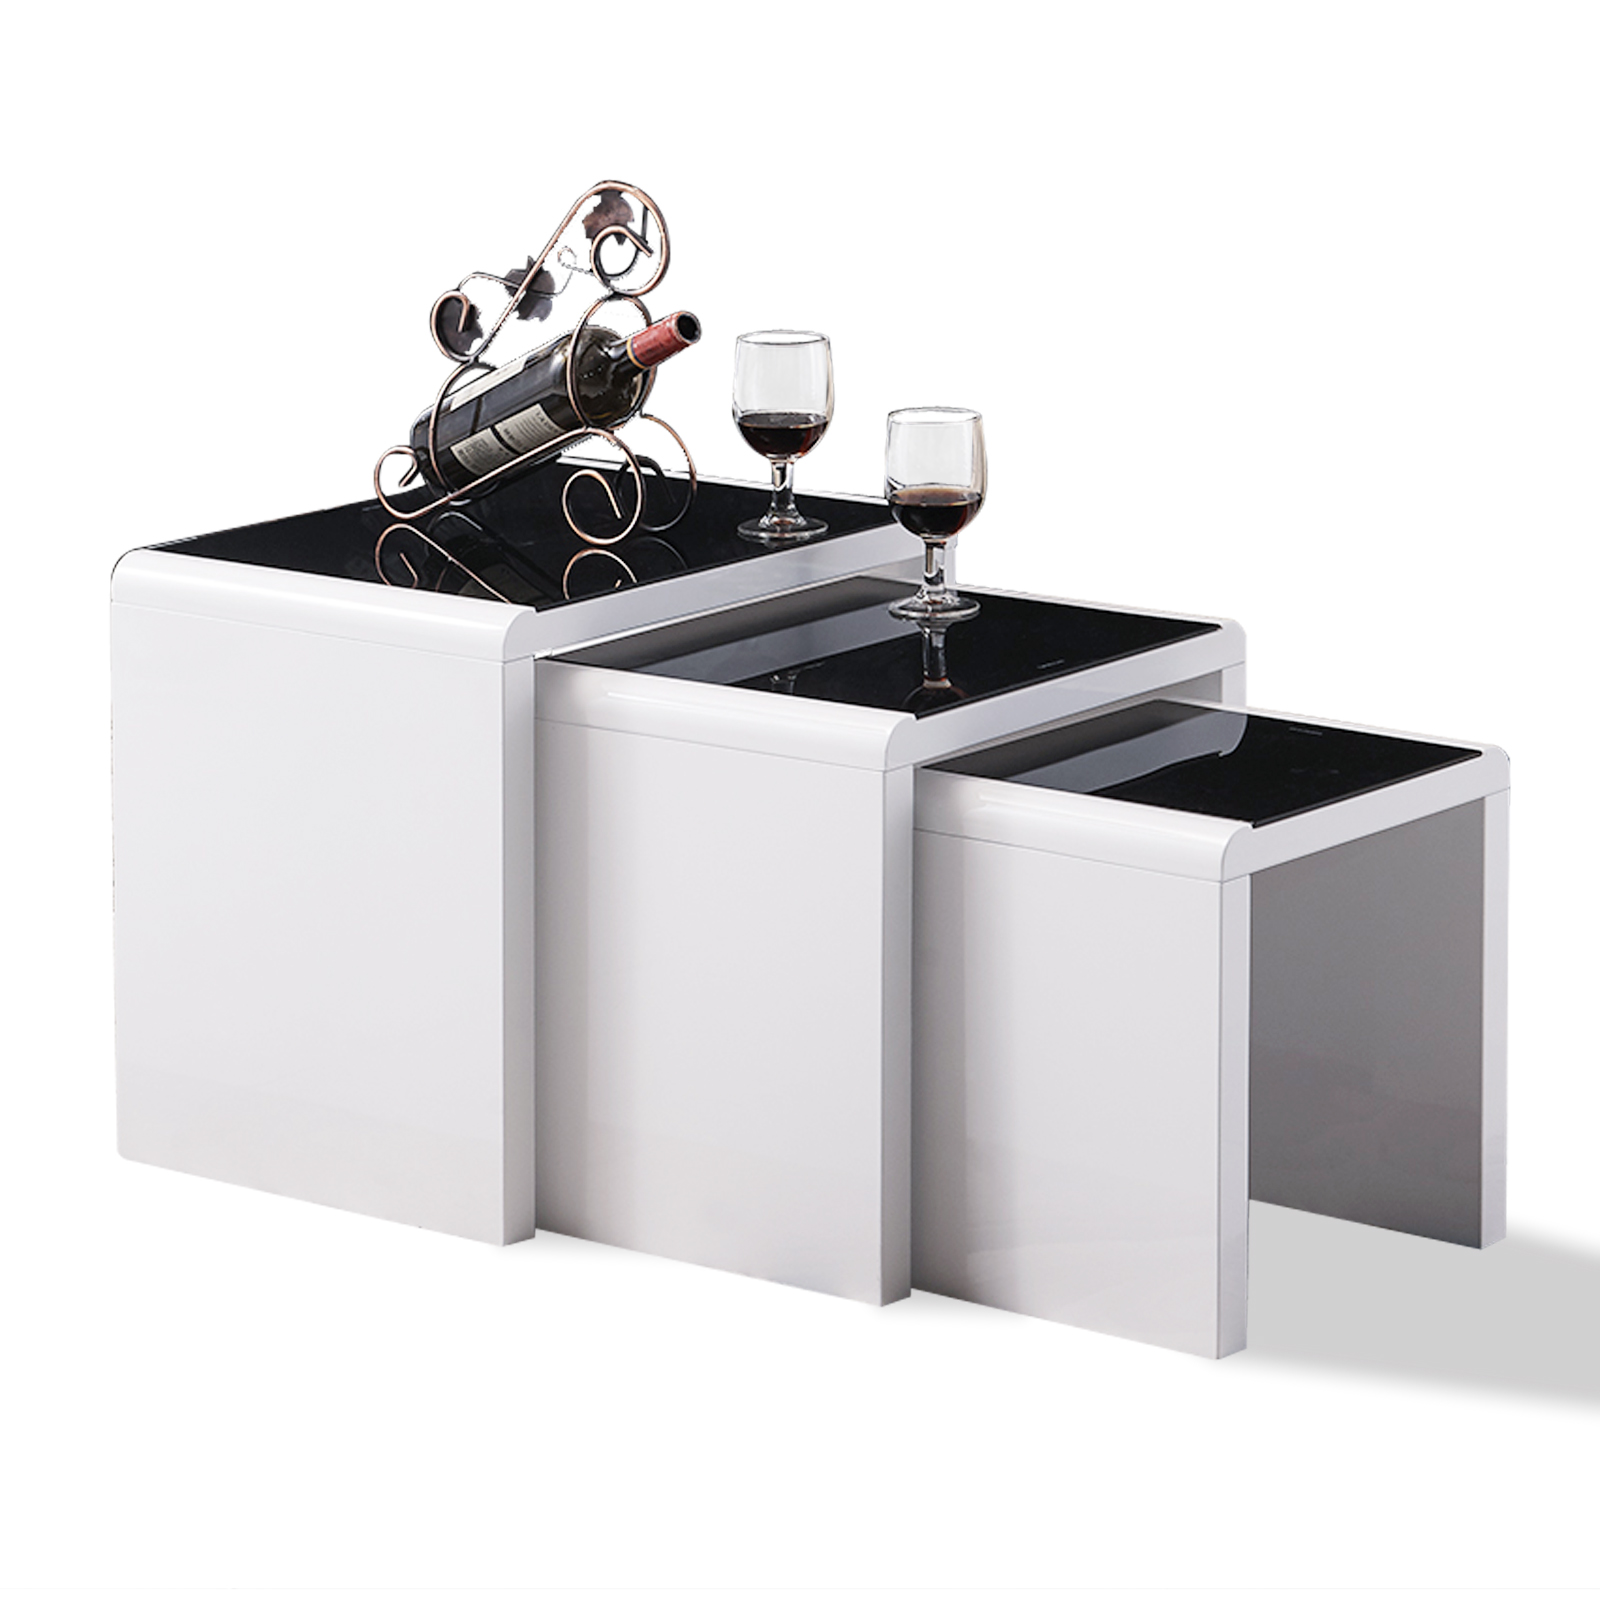 Modern Design White High Gloss Nest Of 3 Coffee Table Side: BN Modern Design High Gloss White+Black Glass Nest Of 3